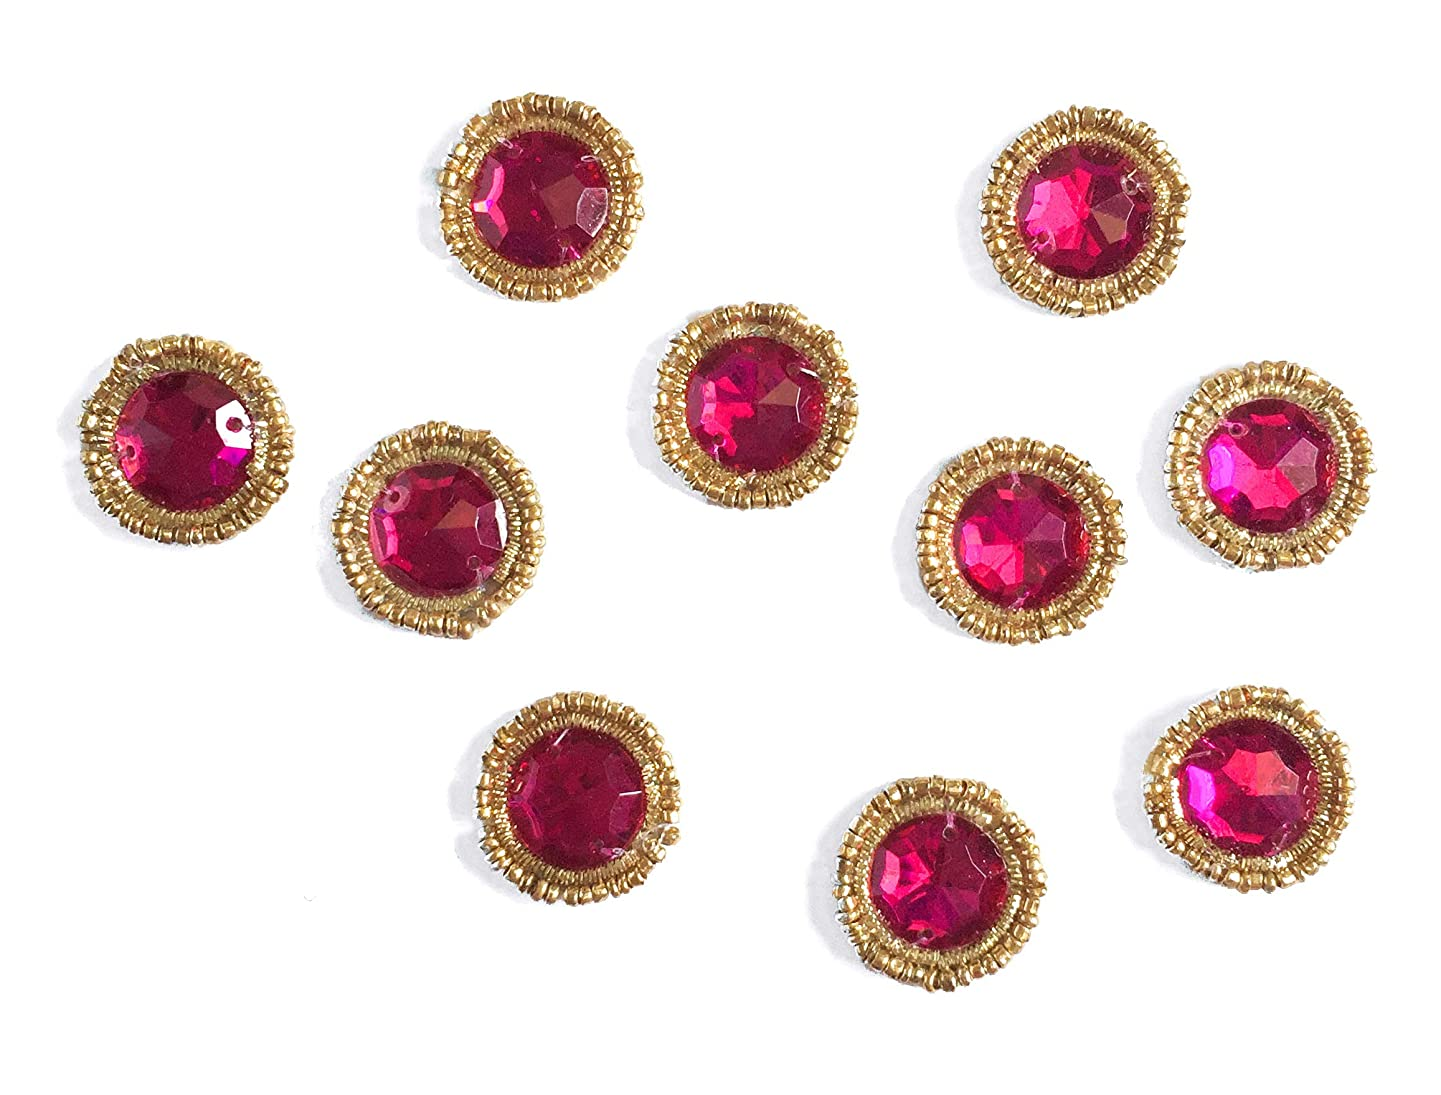 Pink Rhinestone Crystal Sew On Or Glue On Appliques Hand Embroidered Small Patch Pack of 15 by Craftbot